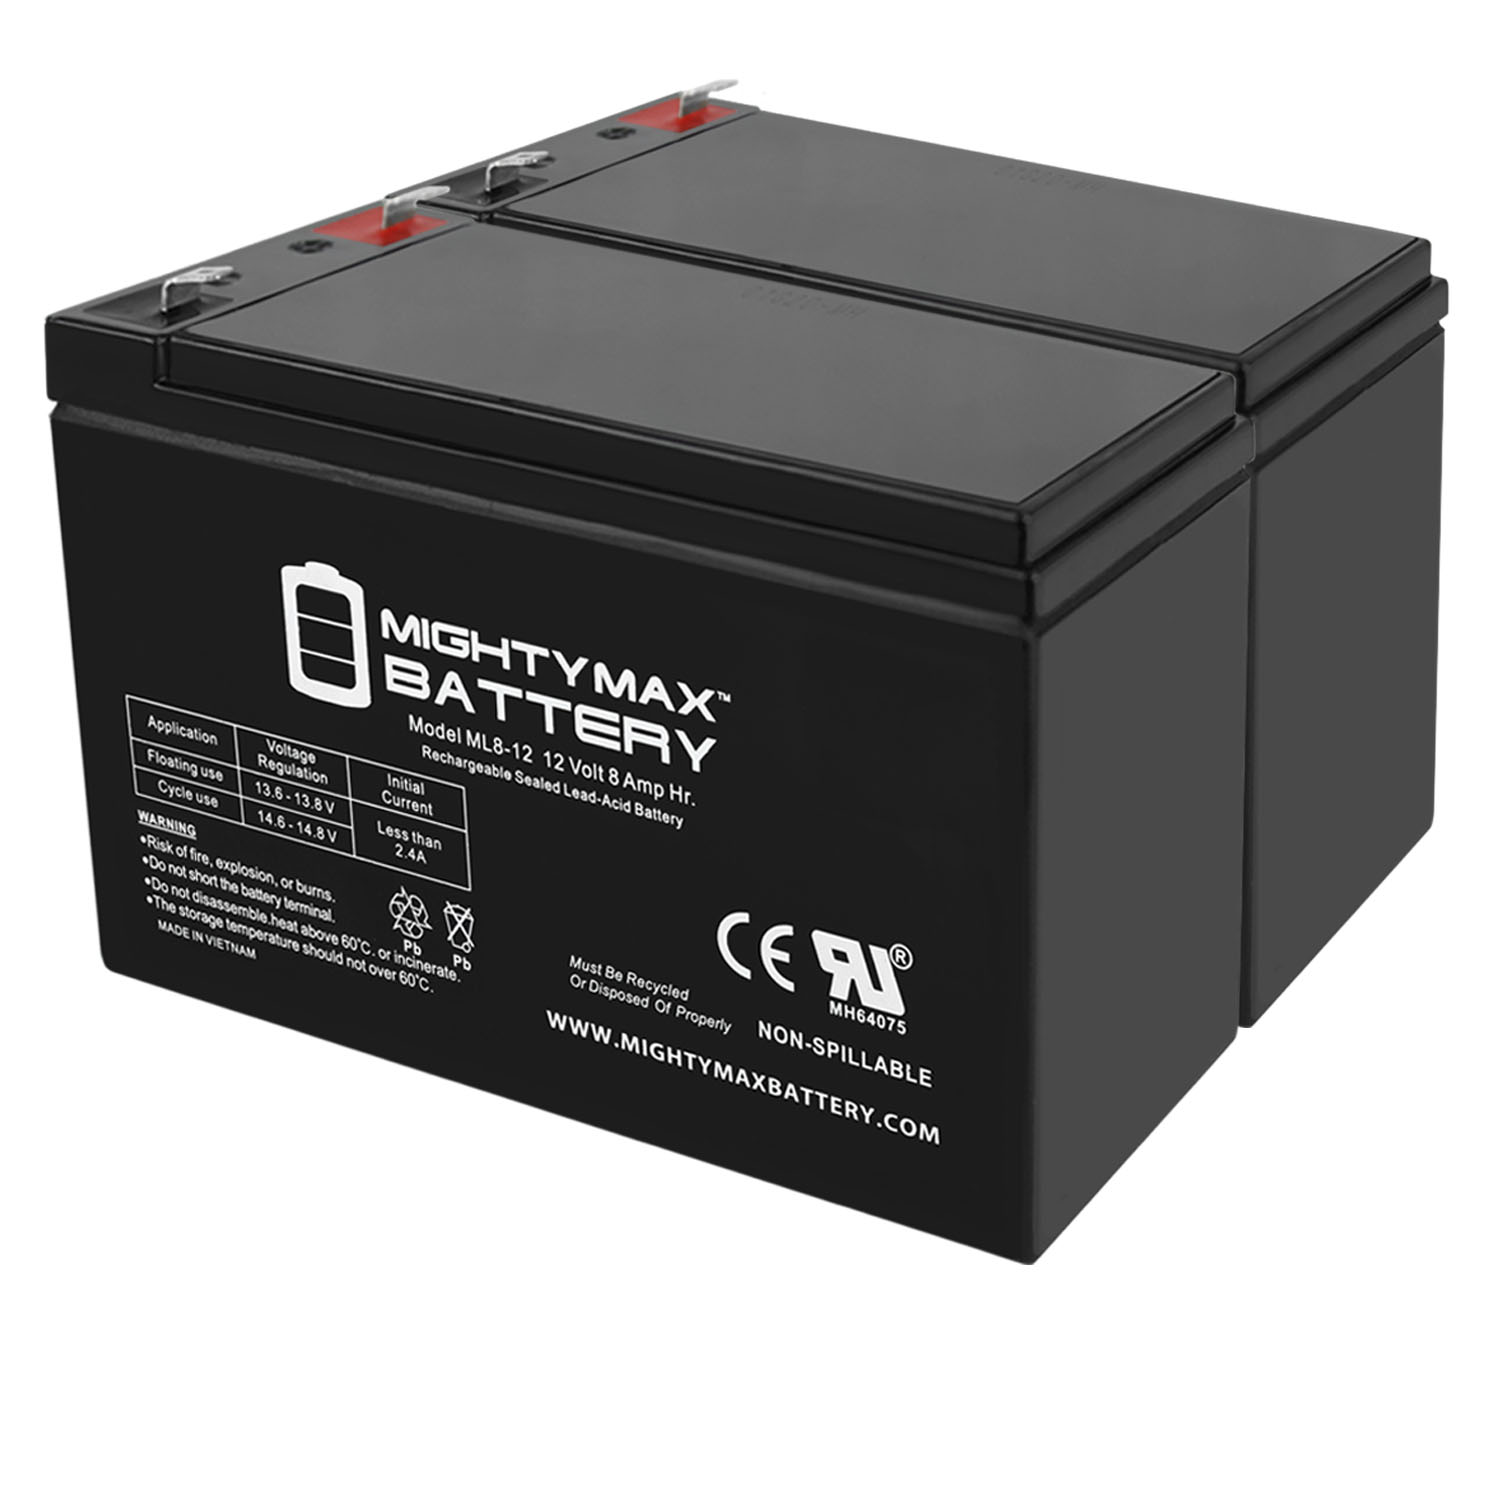 ML8-12 - 12V 8AH Replacement for Leoch Peg Perego DJW12-8HD Battery - 2 Pack